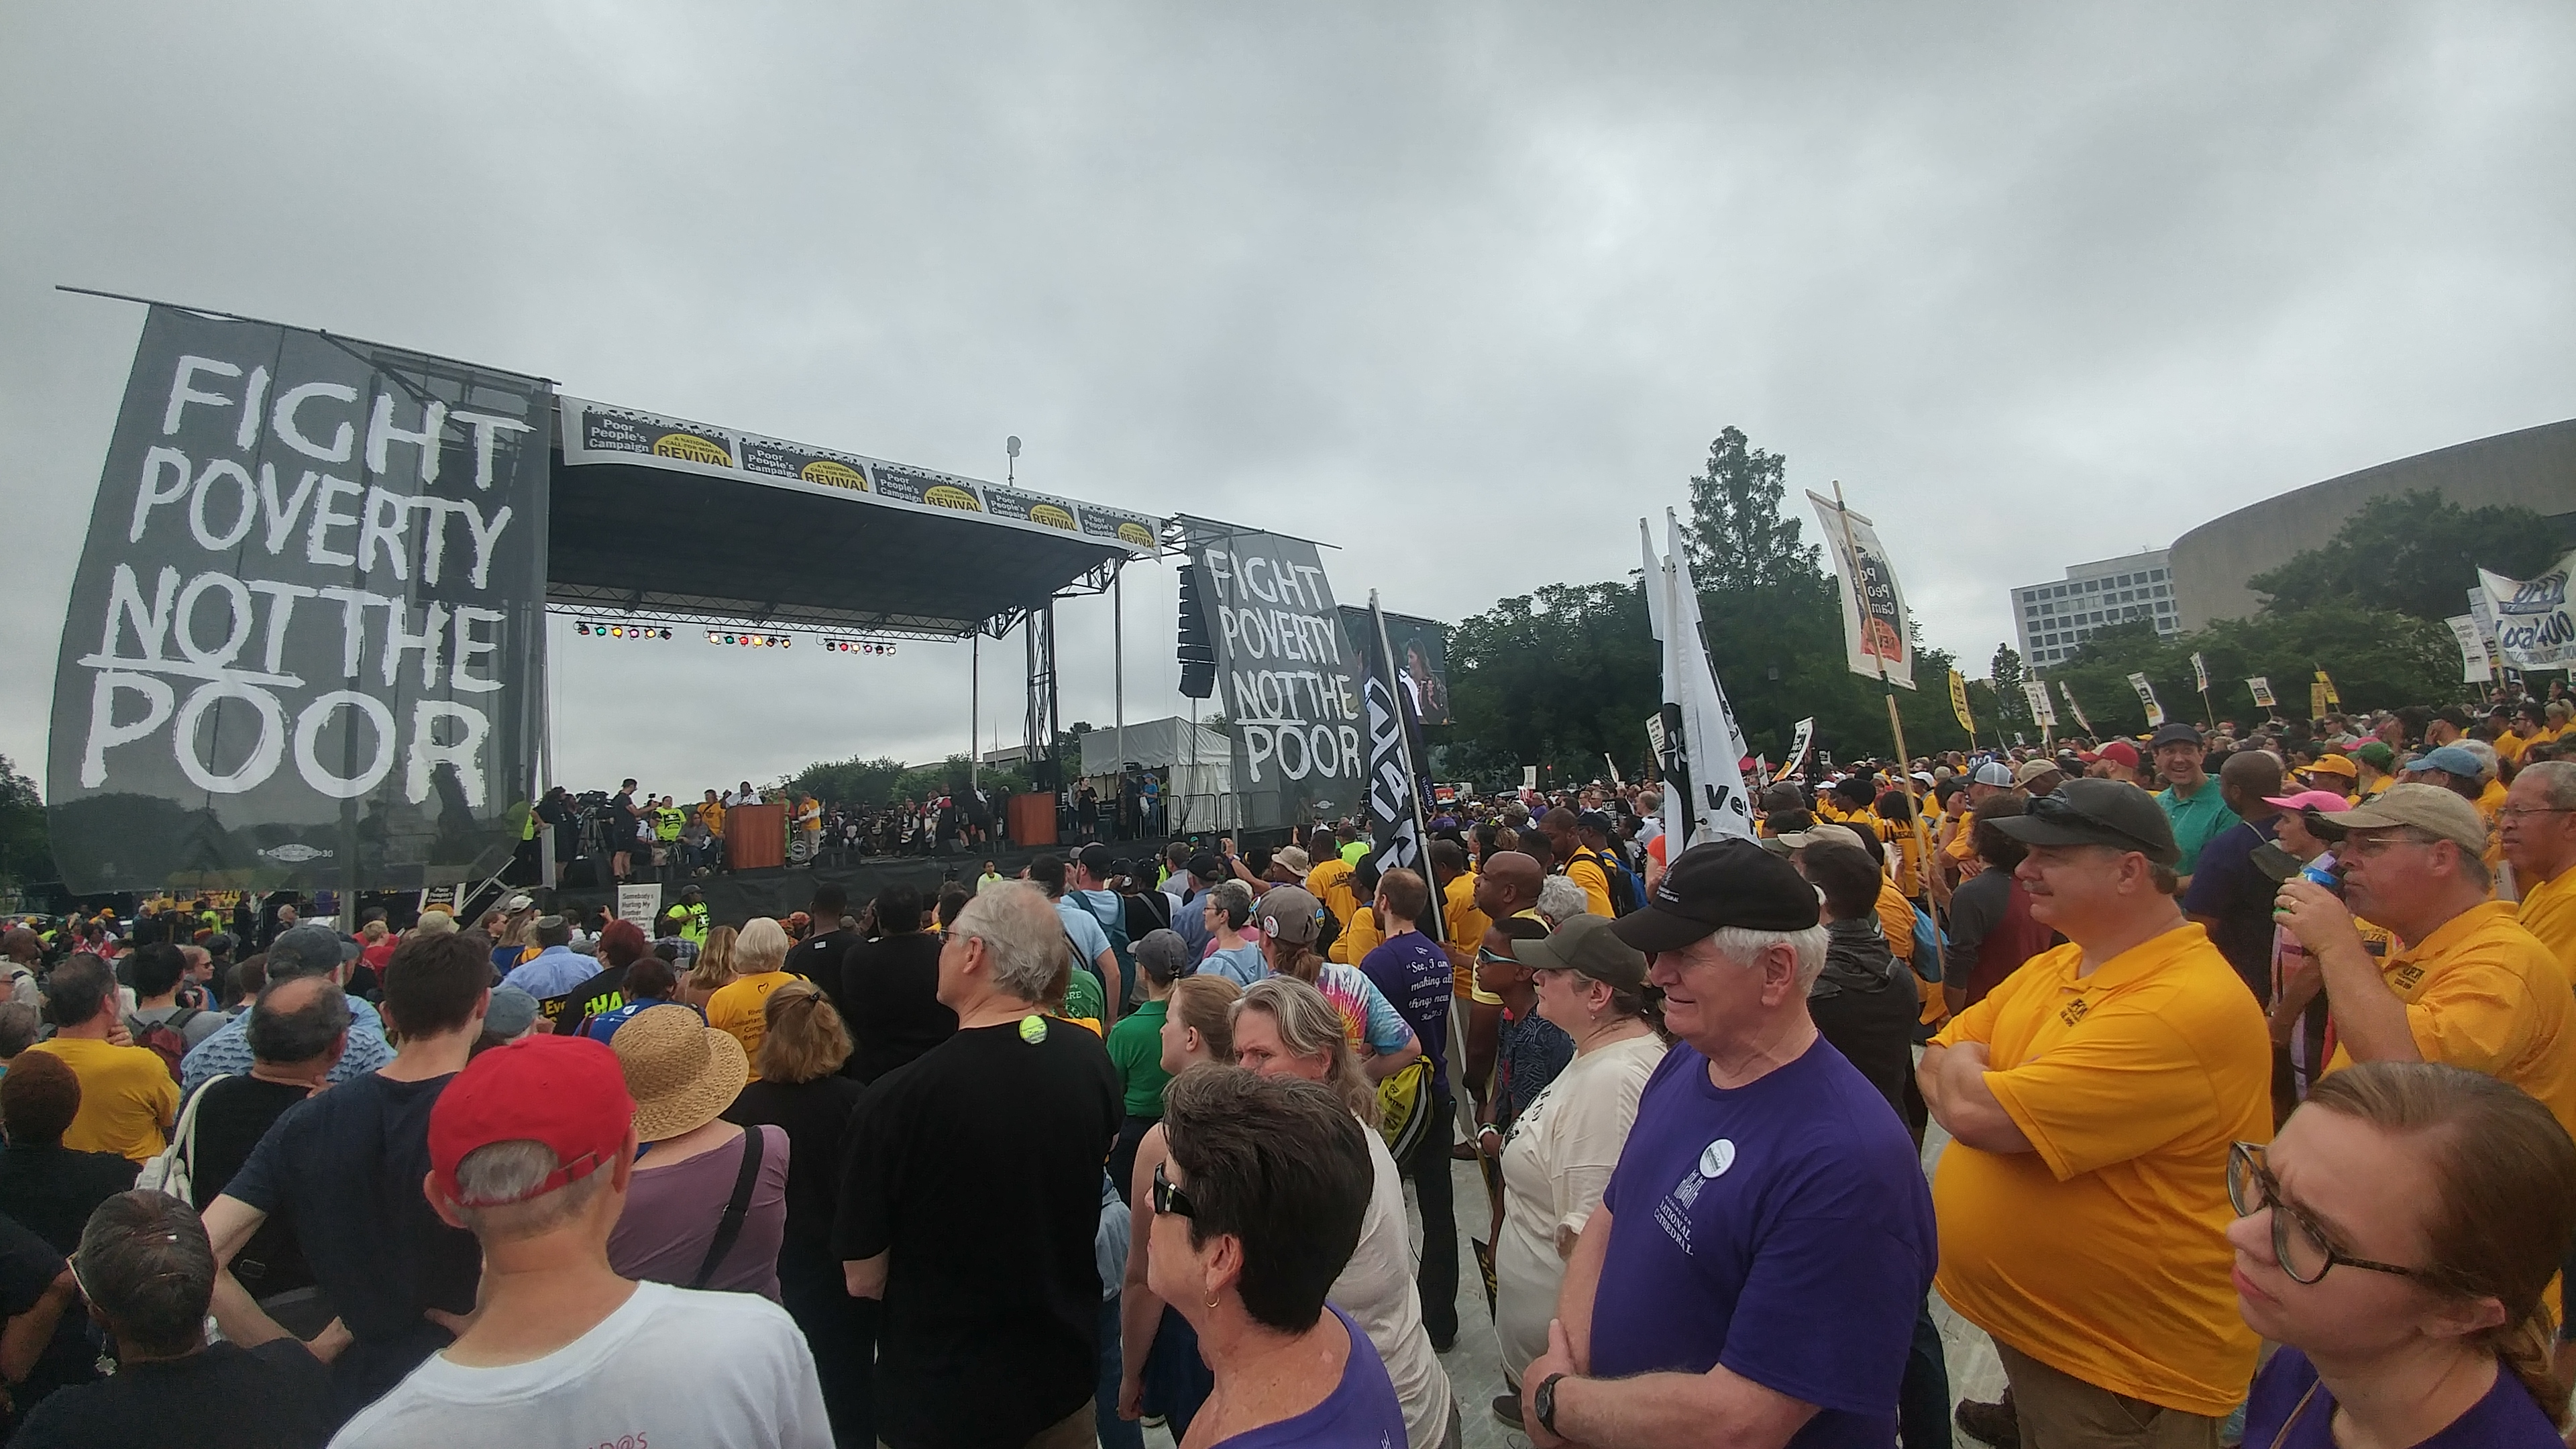 PPC_Mass_Rally_and_March_in_DC_06.23.18_(04).jpg